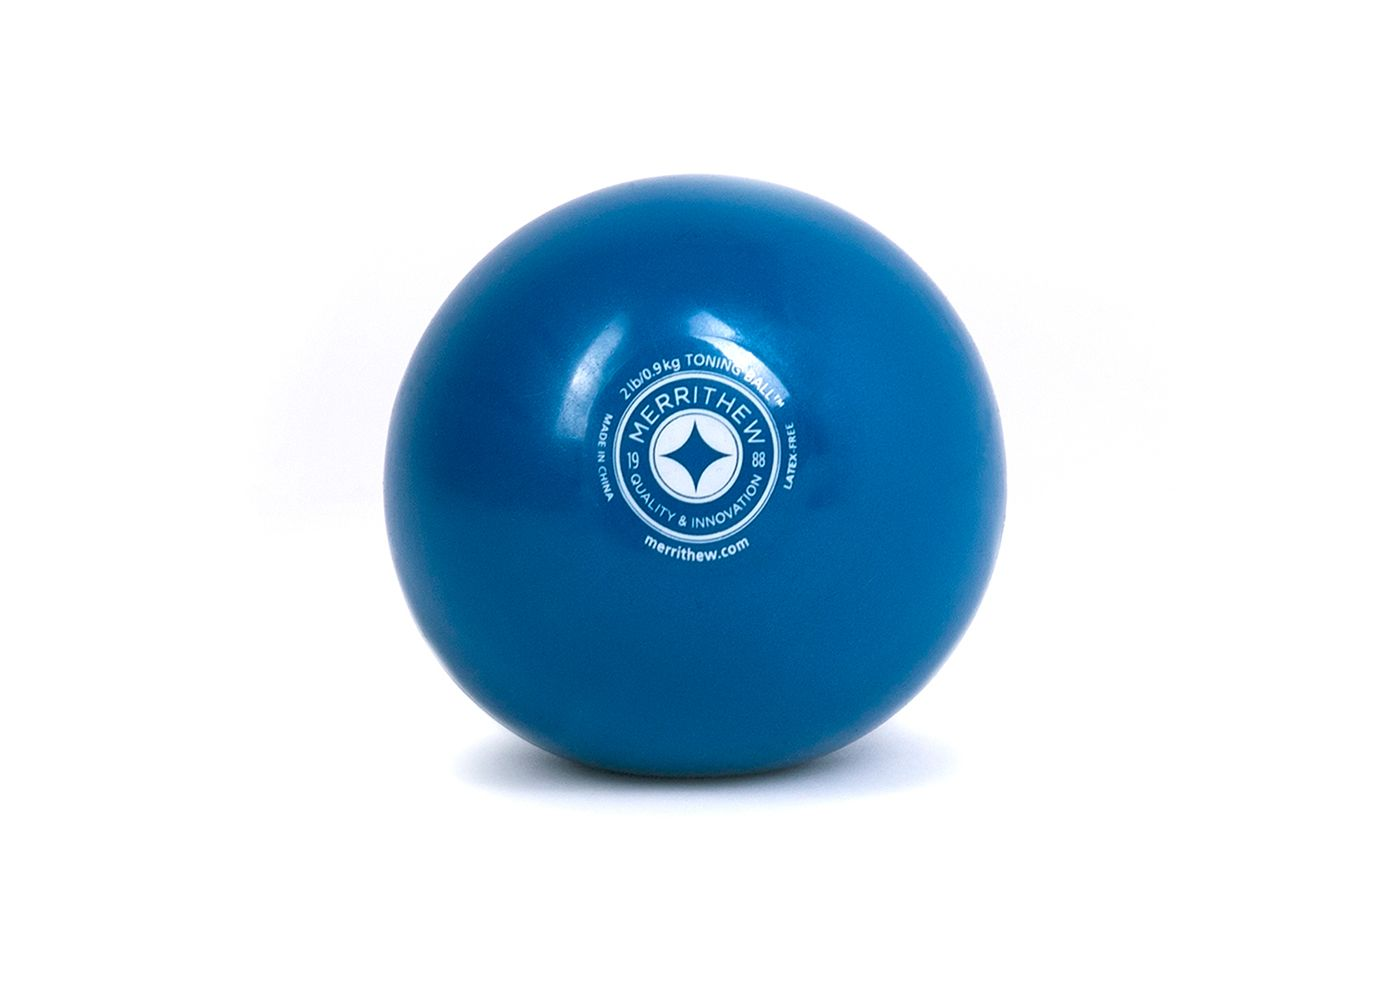 STOTT PILATES 1 lb Toning Ball